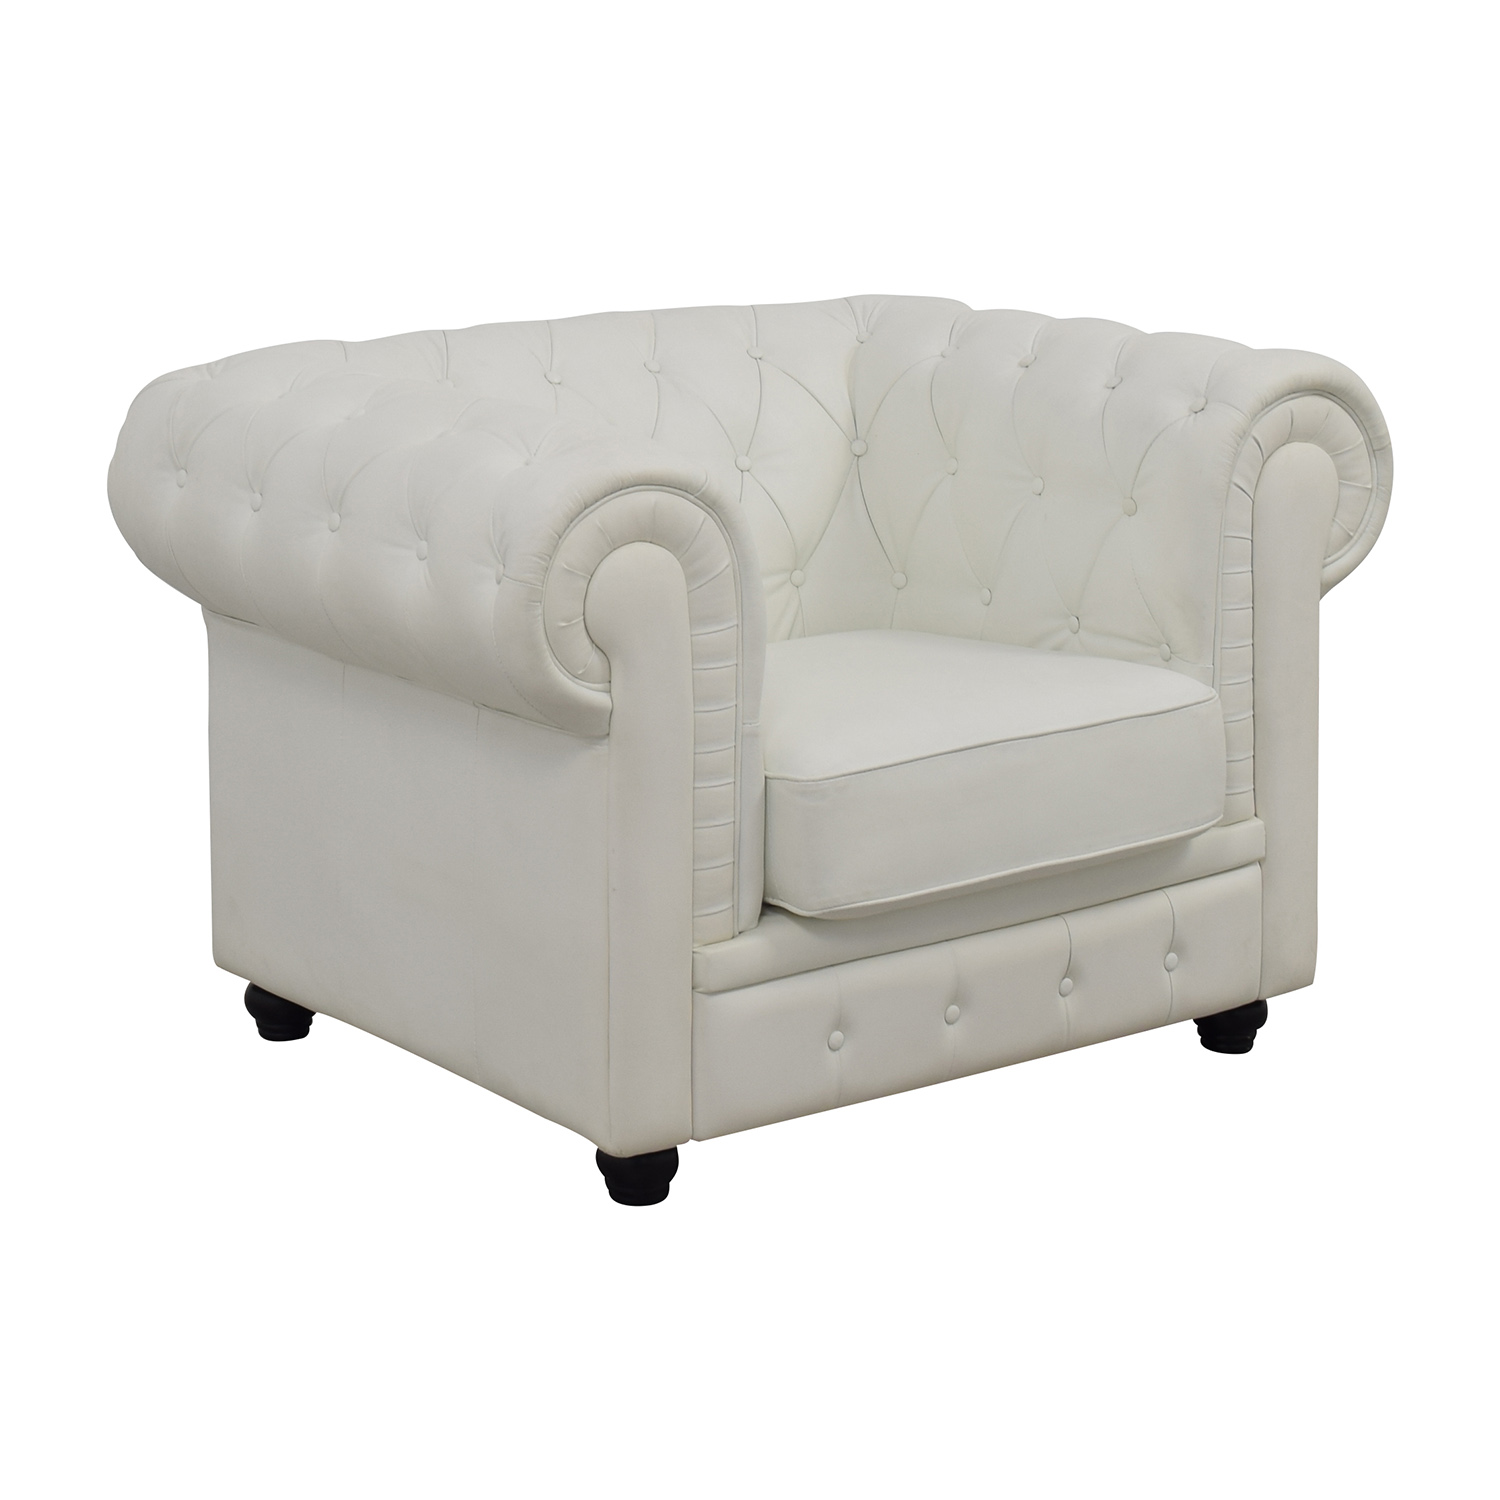 White Arm Chairs 86 Off Chesterfield Tufted White Leather Accent Chair